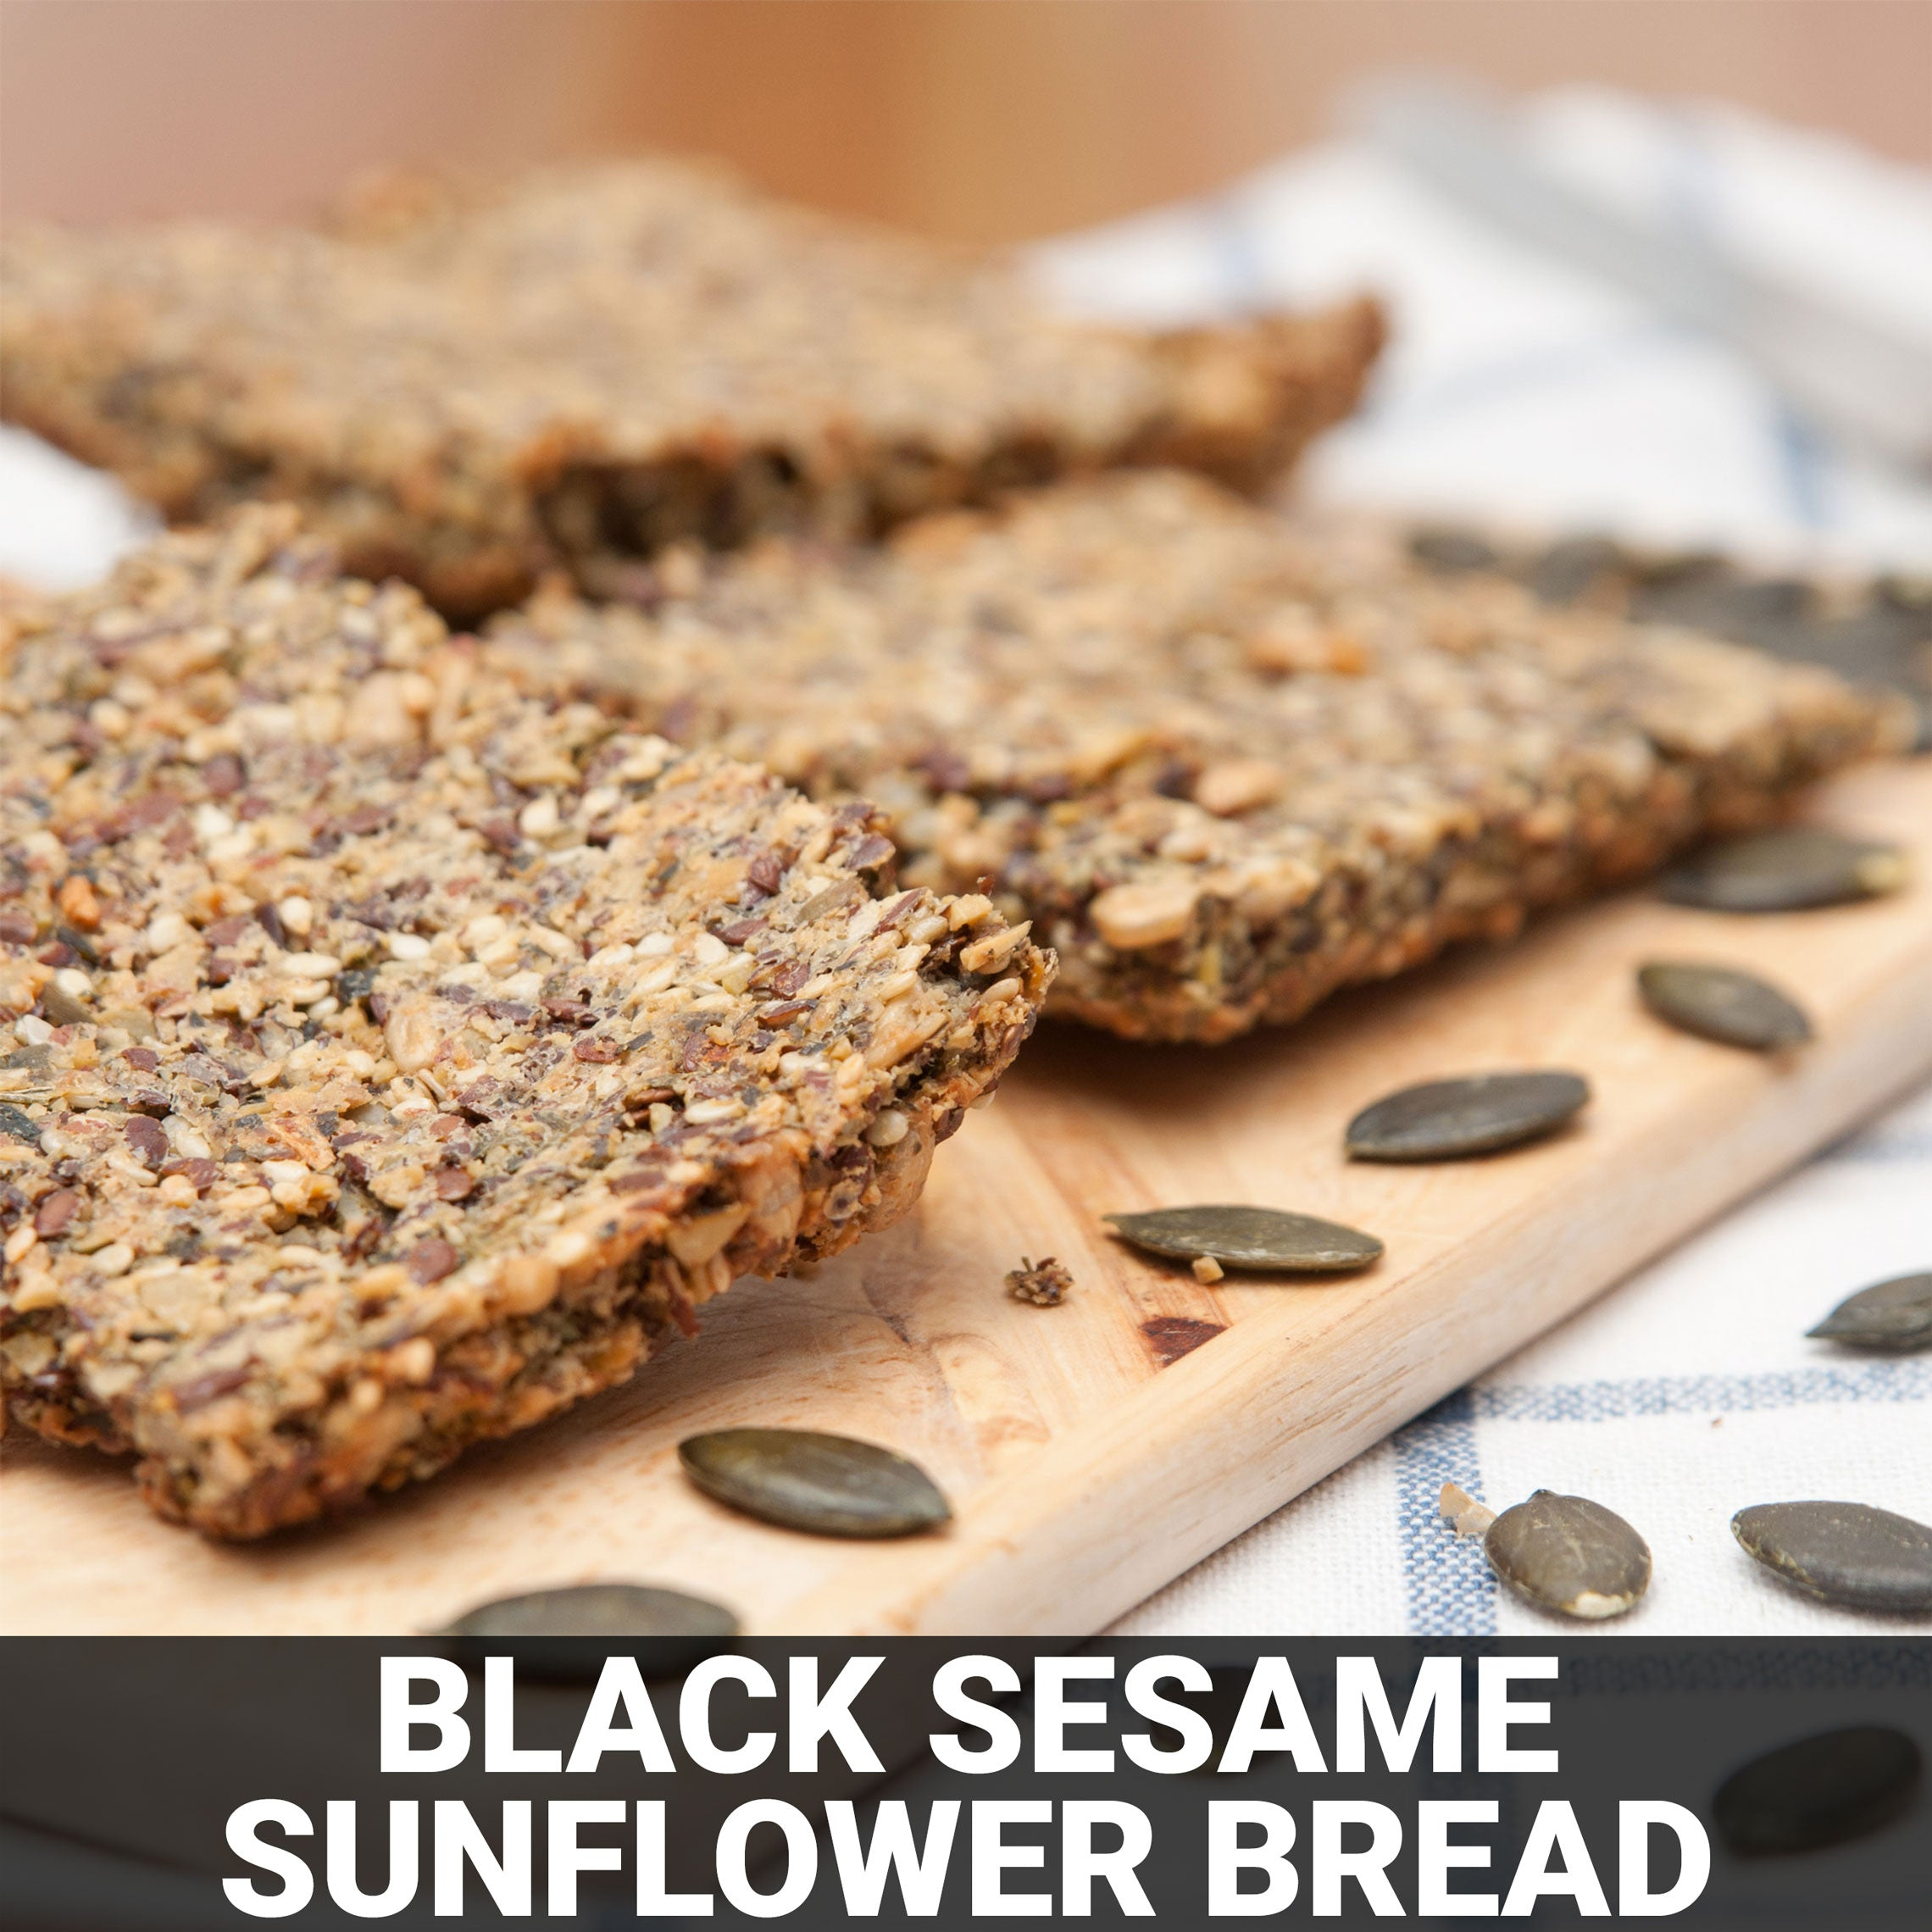 Black Sesame Sunflower Bread Recipe - Foods Alive